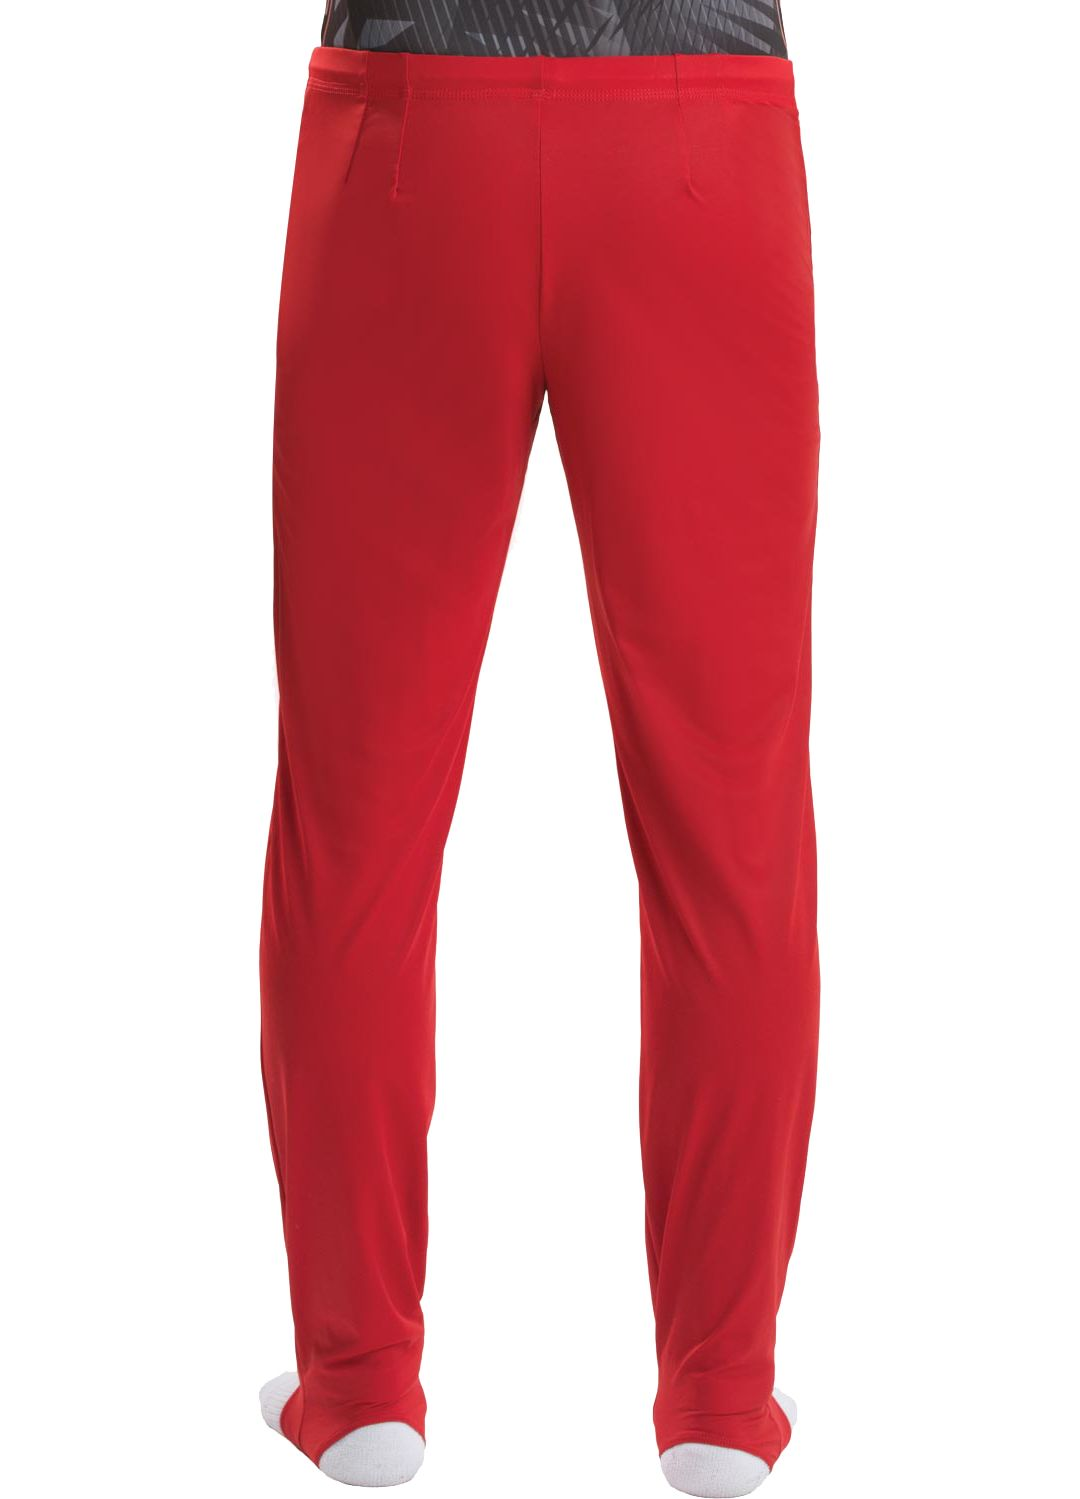 6dcf6ce4a225 Under Armour Men's Stretchtek Gymnastics Pants | DICK'S Sporting Goods